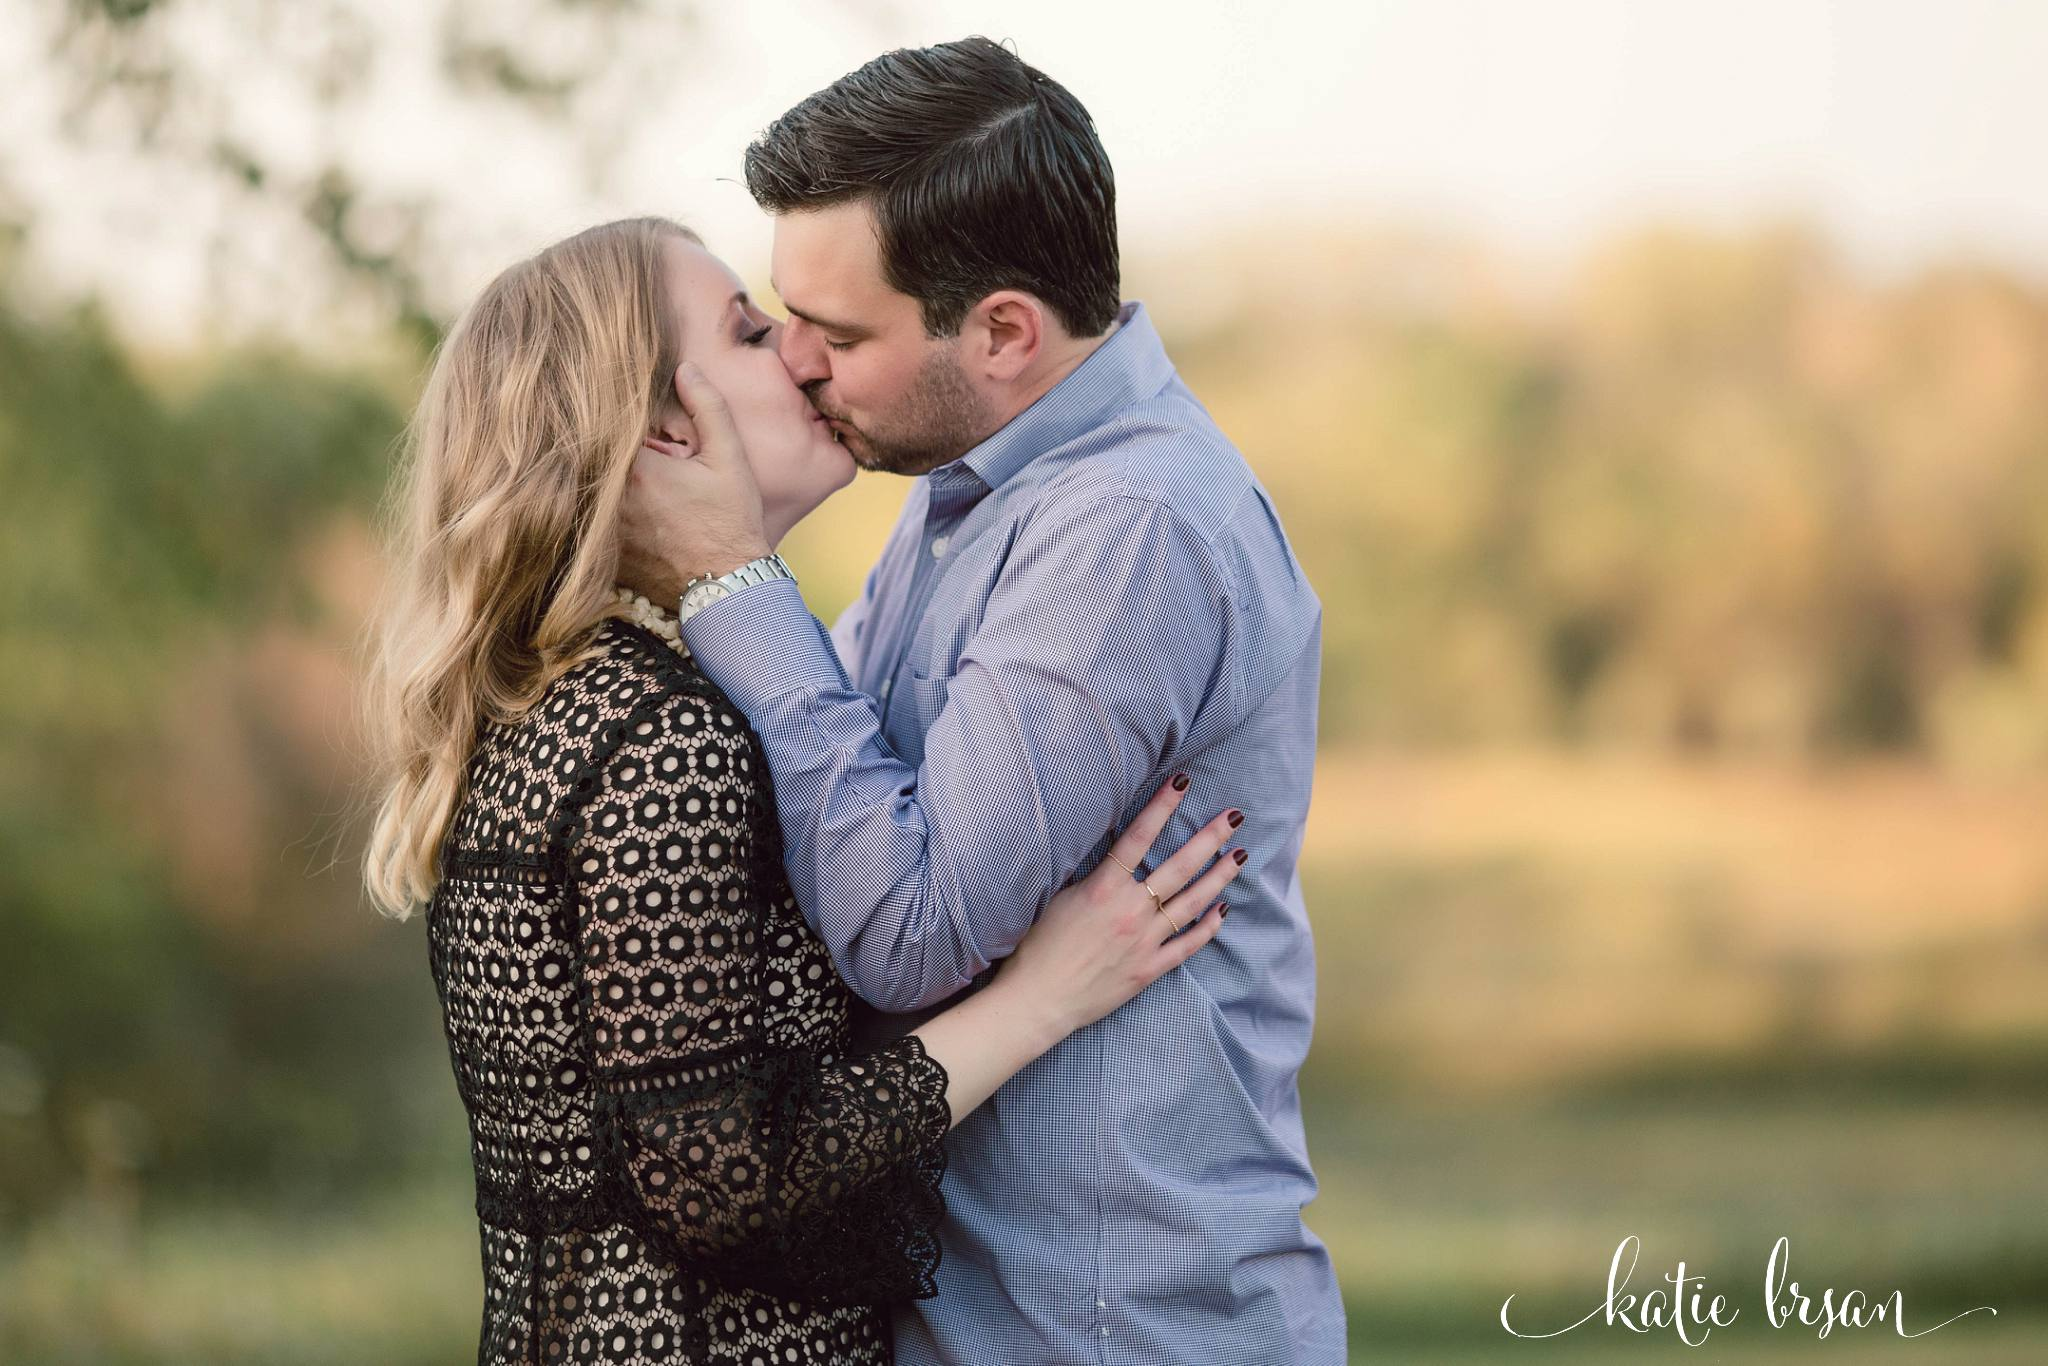 Mokena_EngagementSession_RuffledFeathers_Wedding_0951.jpg